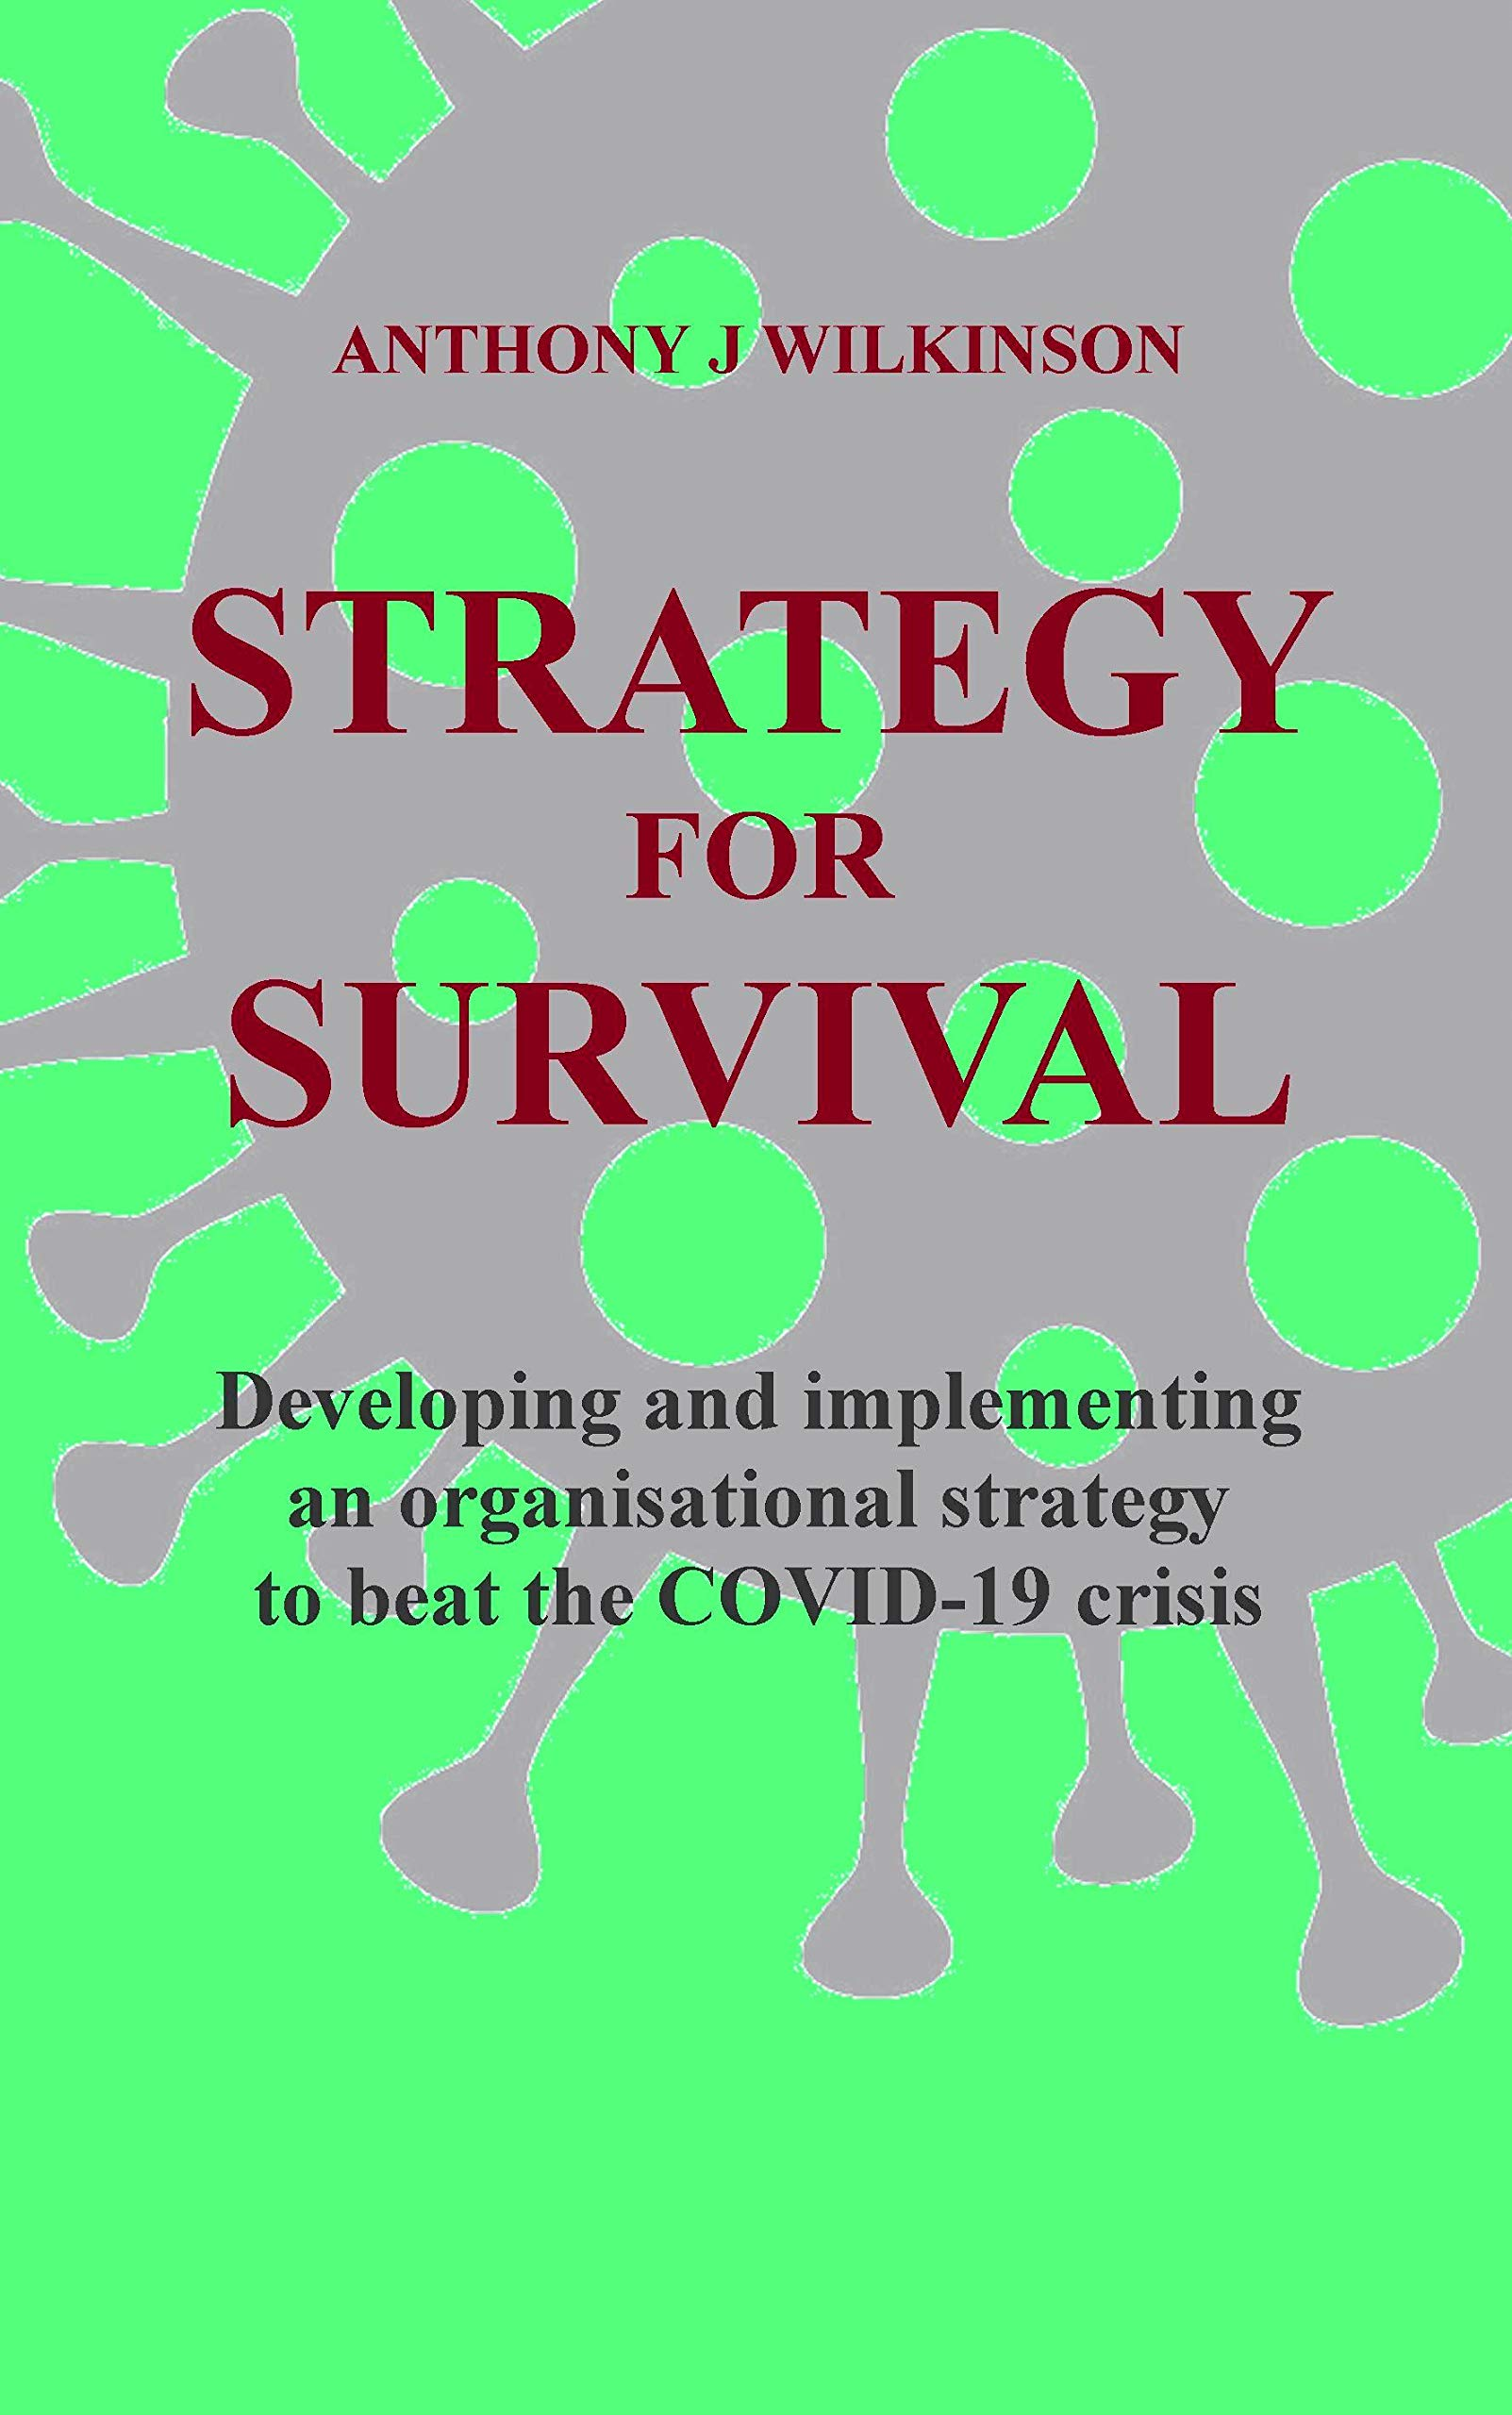 Strategy for Survival: Developing and implementing an organisational strategy to beat the COVID-19 crisis